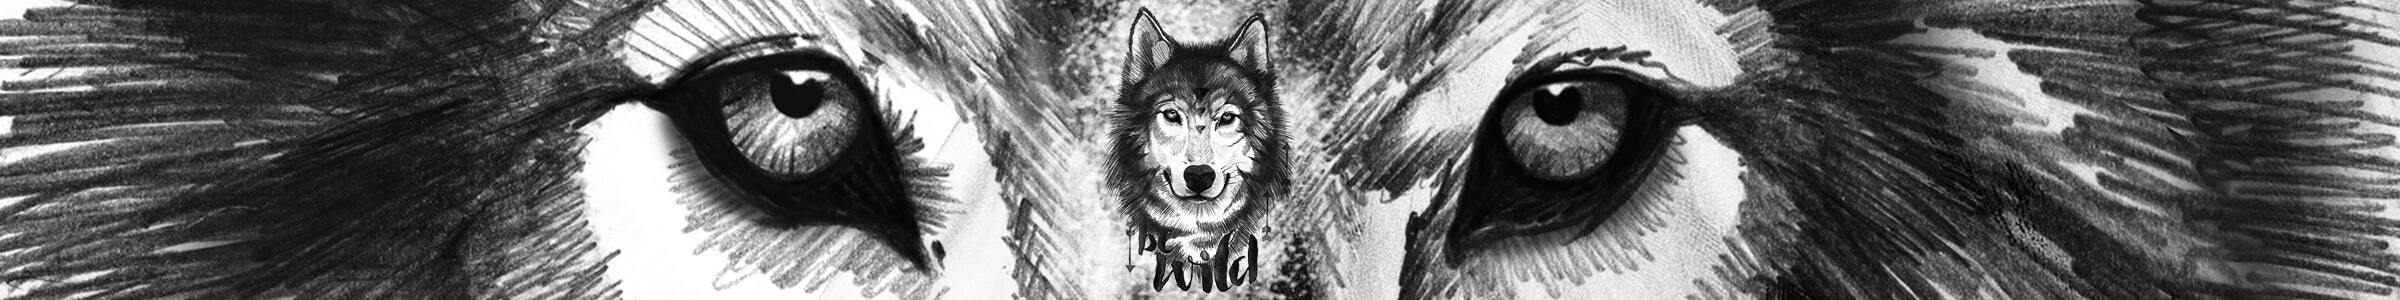 Category_Teaser_Header_Wolf_2400x300